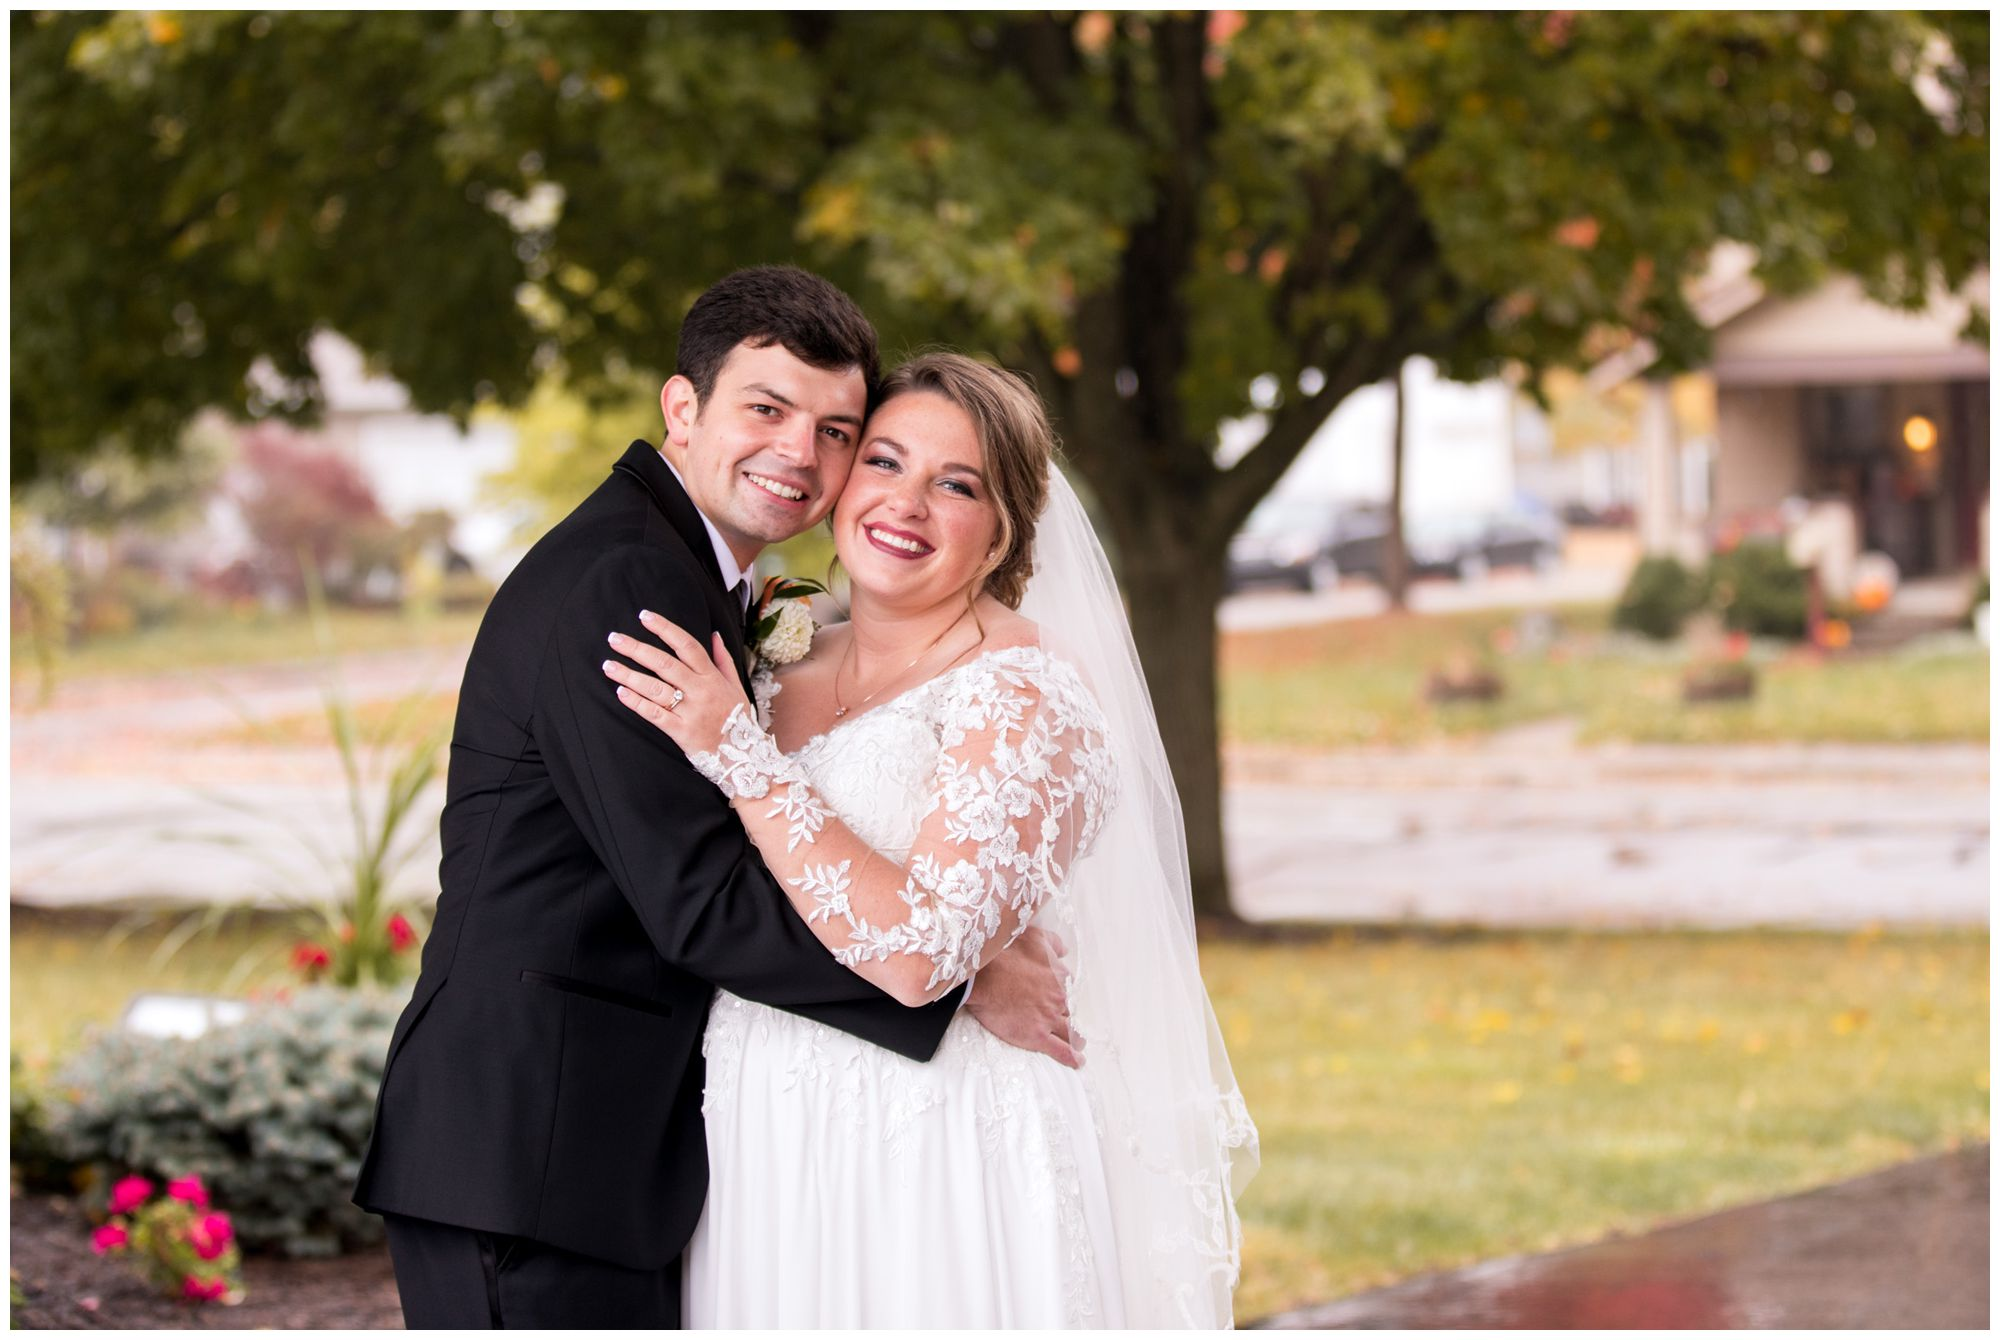 bride and groom wedding portraits at Zion Lutheran Church in Decatur, Indiana